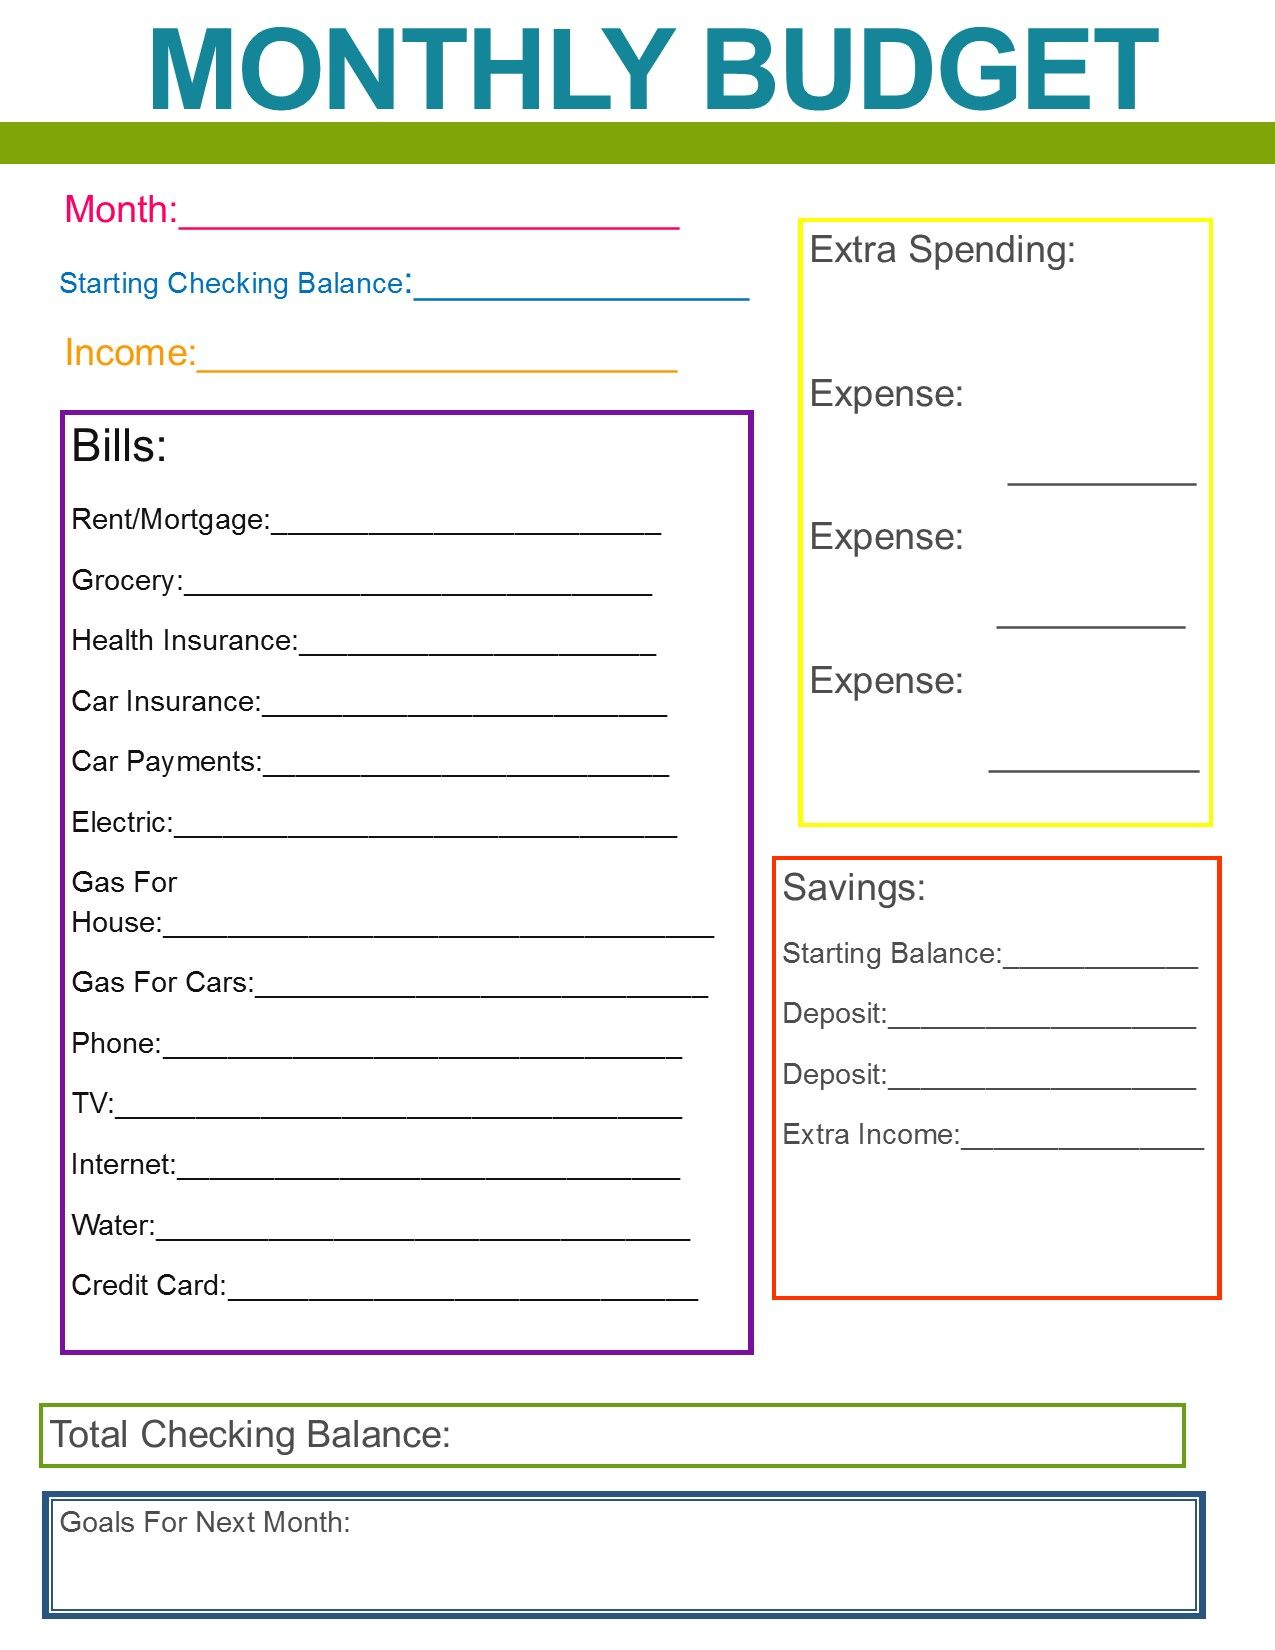 template for budgeting money - monthly family budget budgeting organizations and